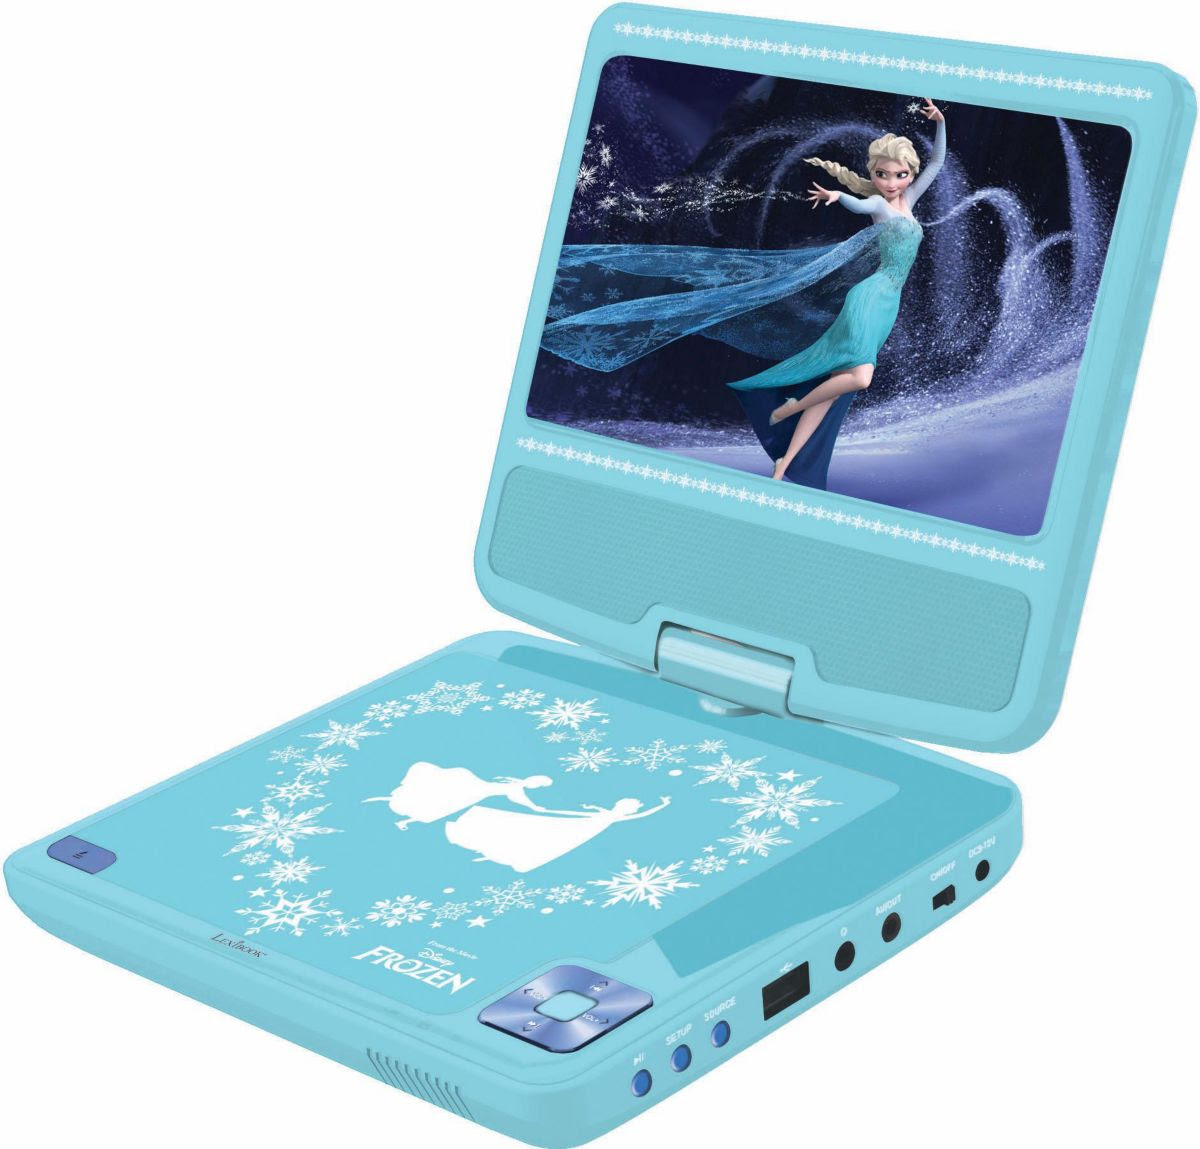 Lexibook Tragbarer DVD Player Disney Frozen